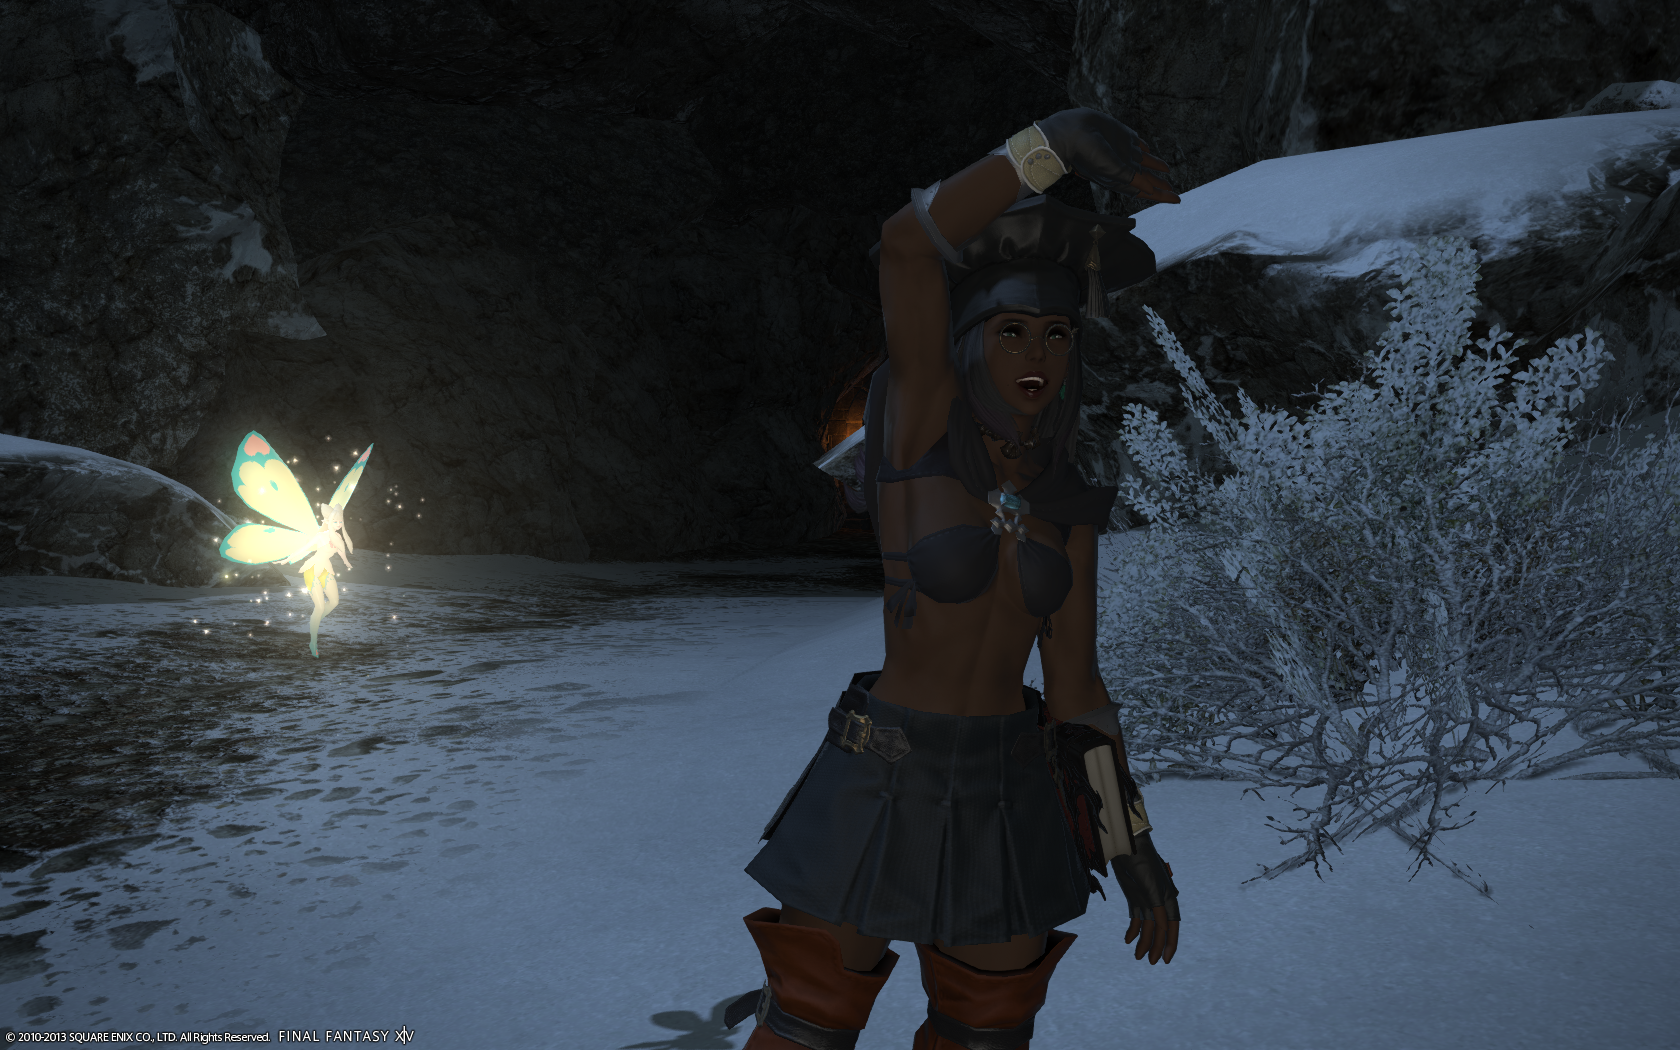 charismatic  something titans mods spam server also attack ff14